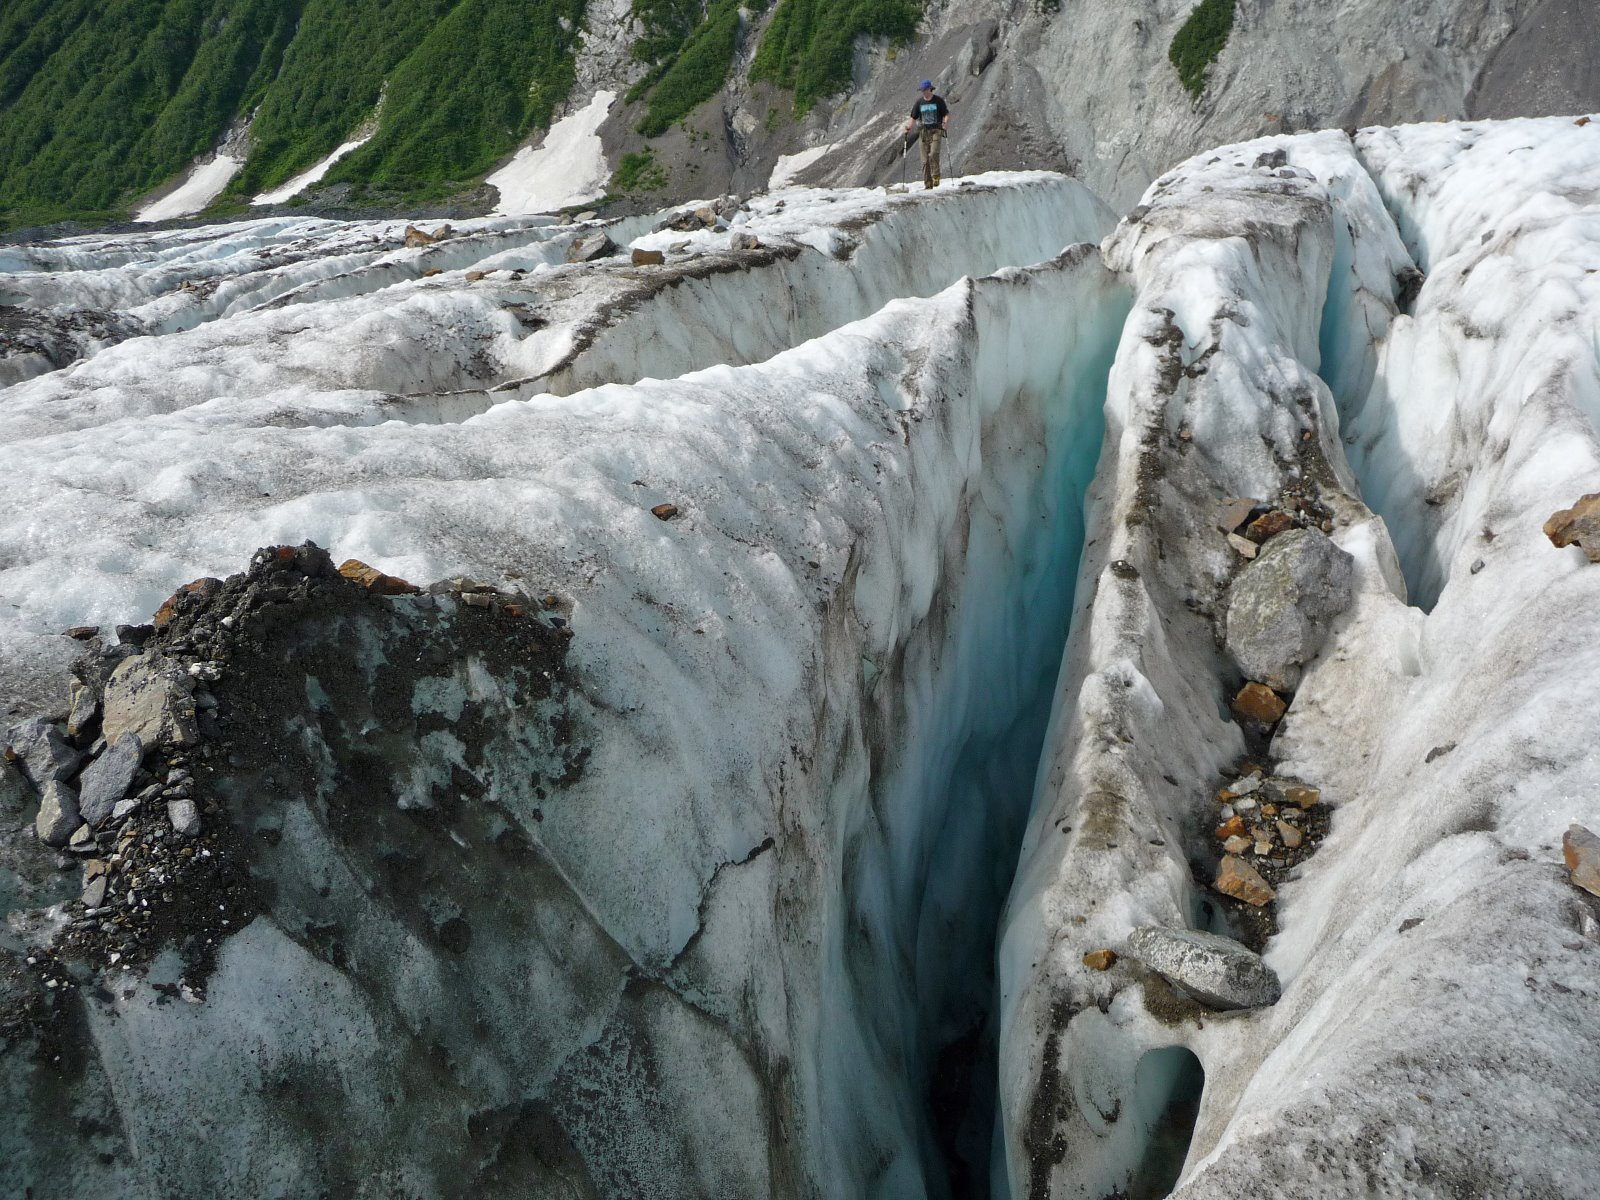 Rocks building up on moving glaciers.